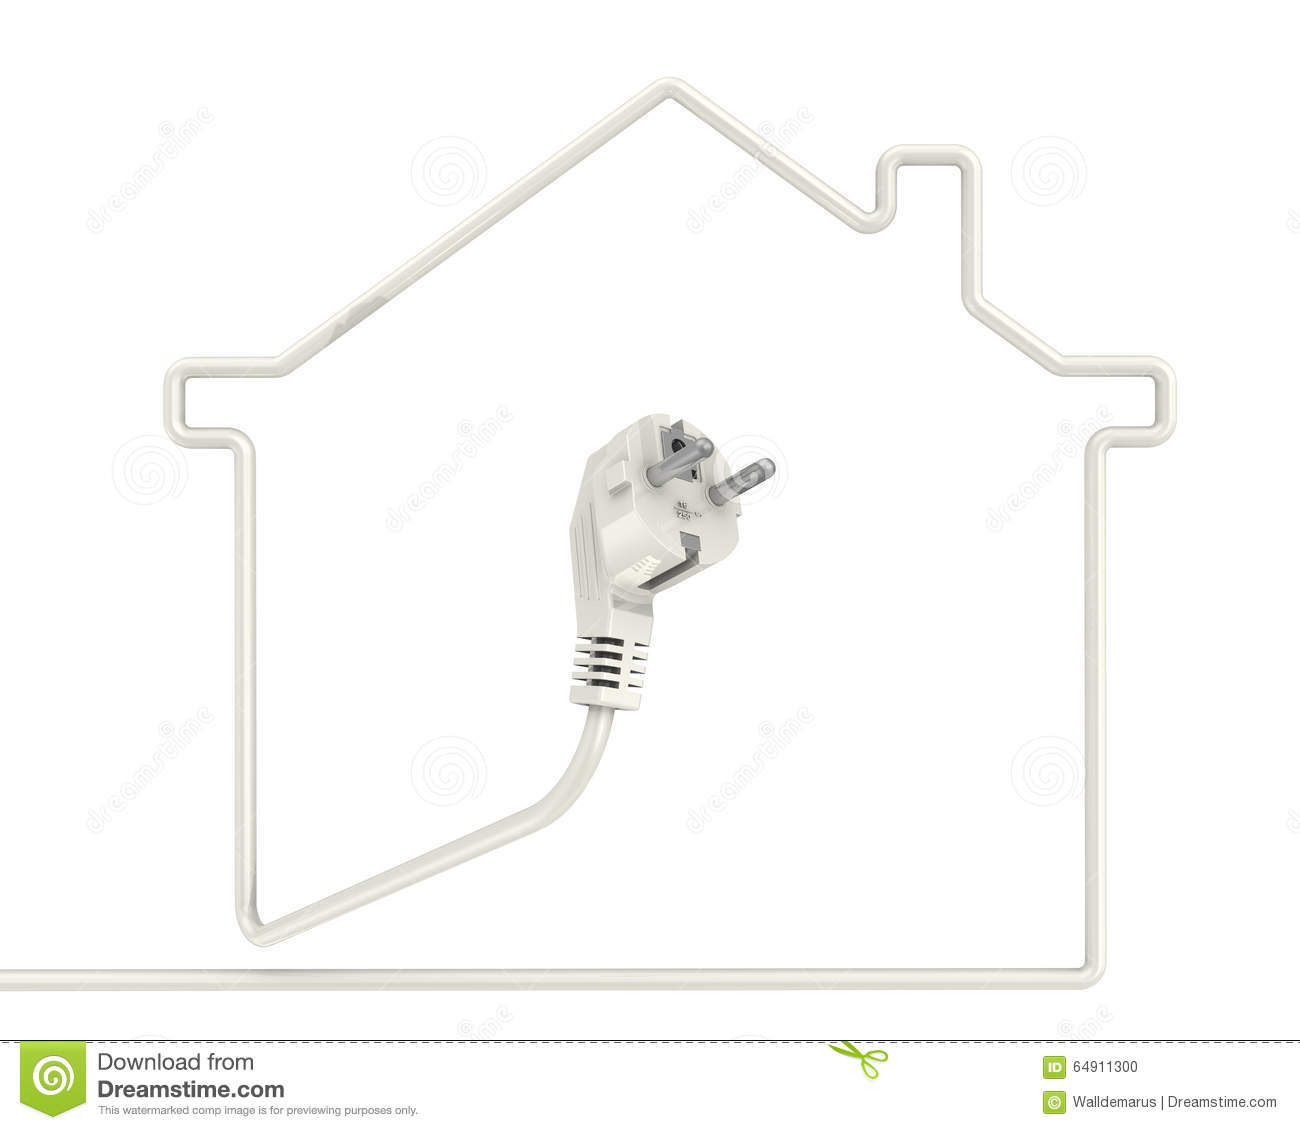 Electrification of the house concept stock illustration electrification of the house concept biocorpaavc Images